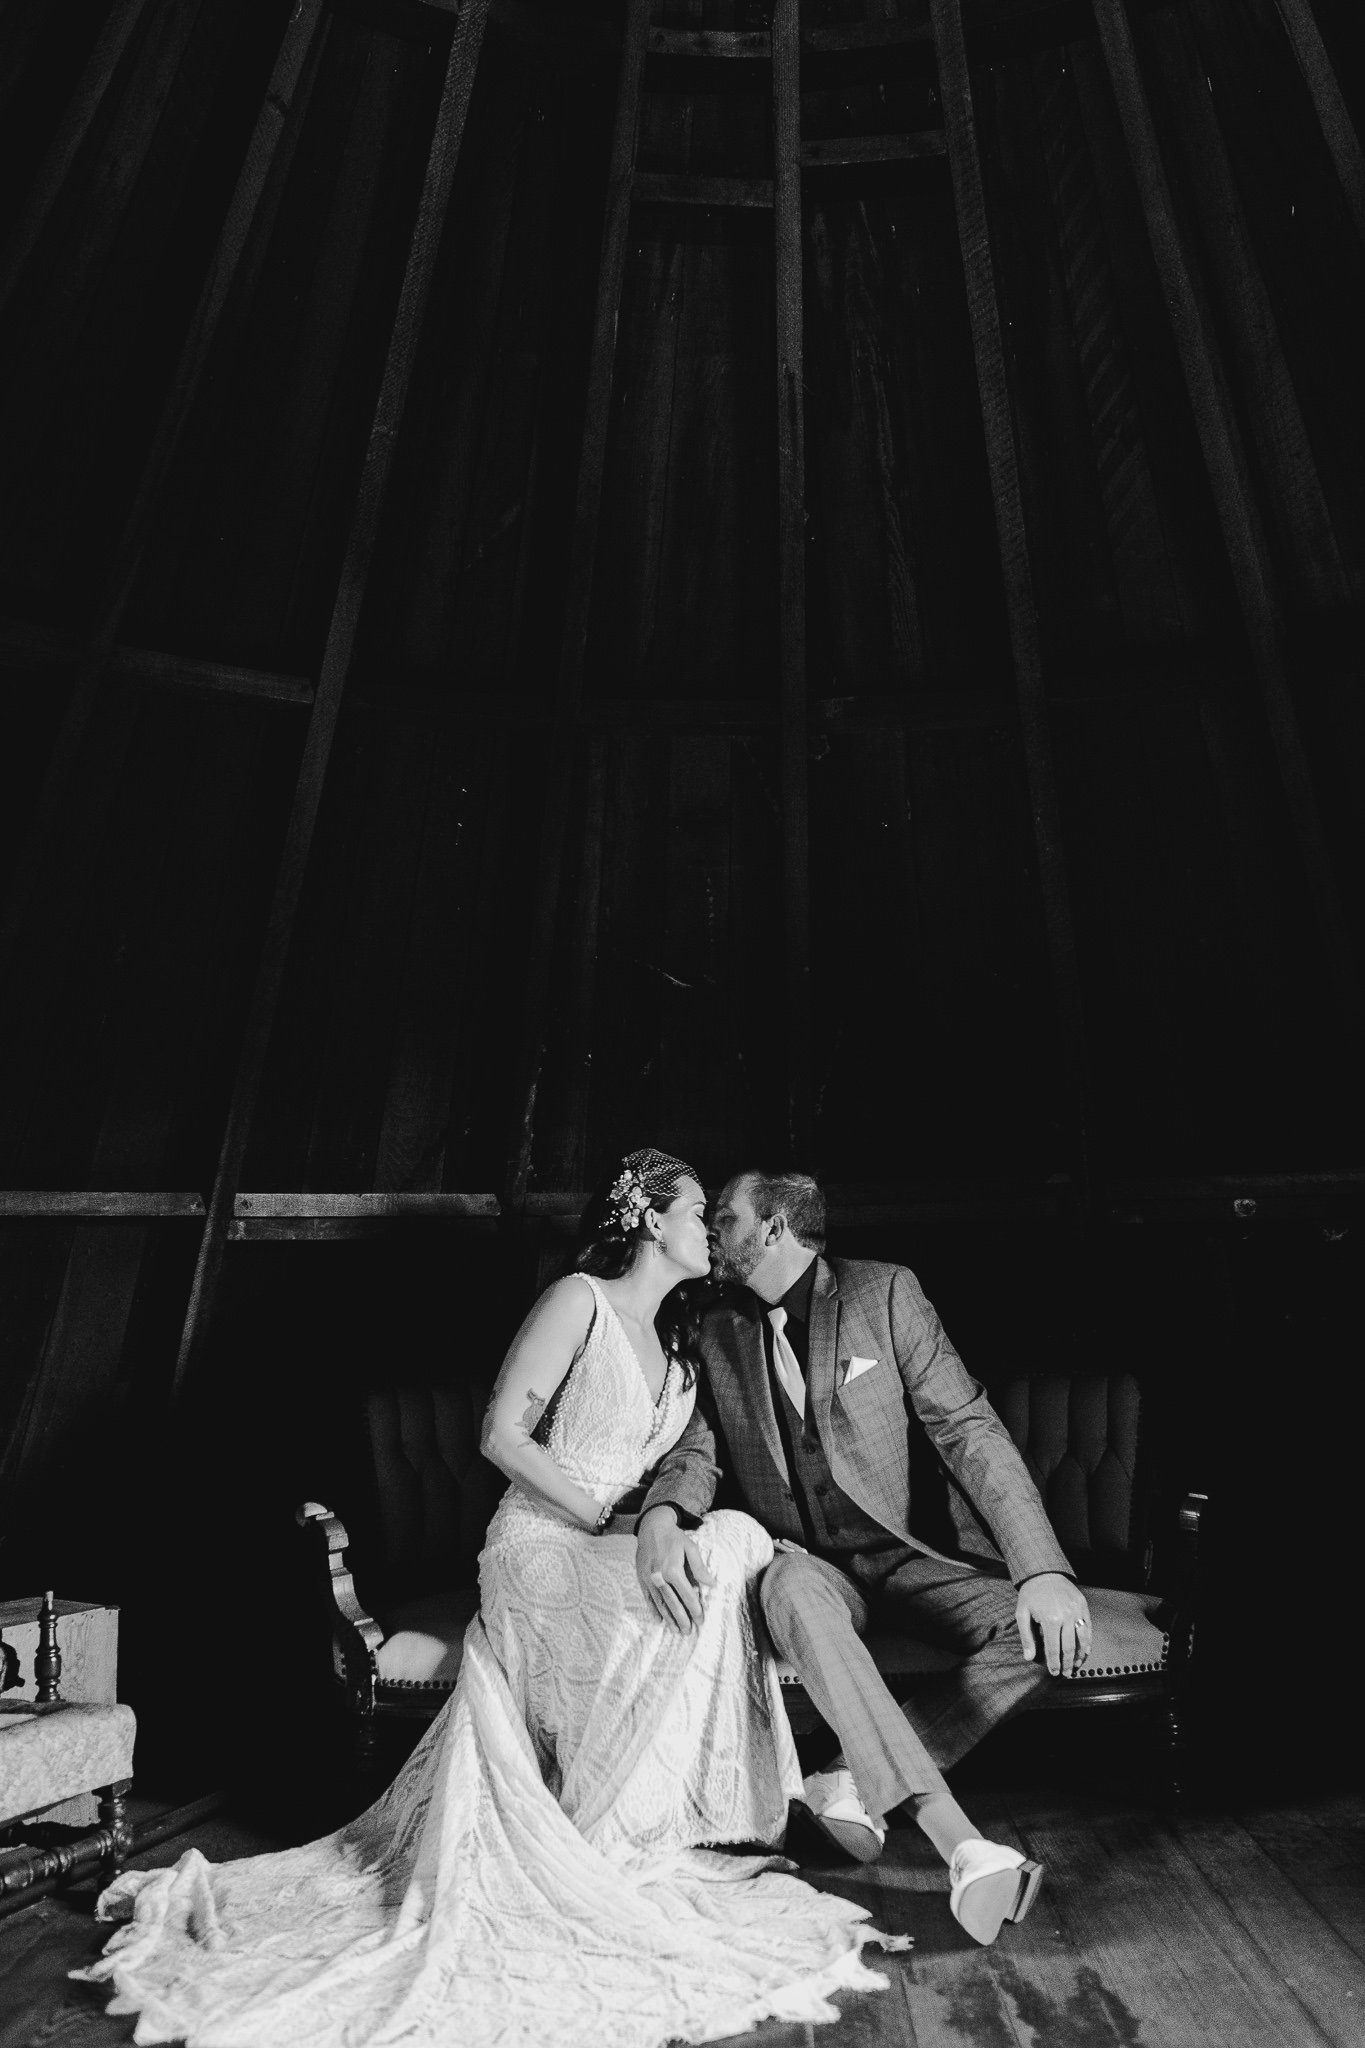 Archer Inspired Photography Sara and Aaron Winchester Mystery House NorCal San Jose California Wedding Photographer-327.jpg